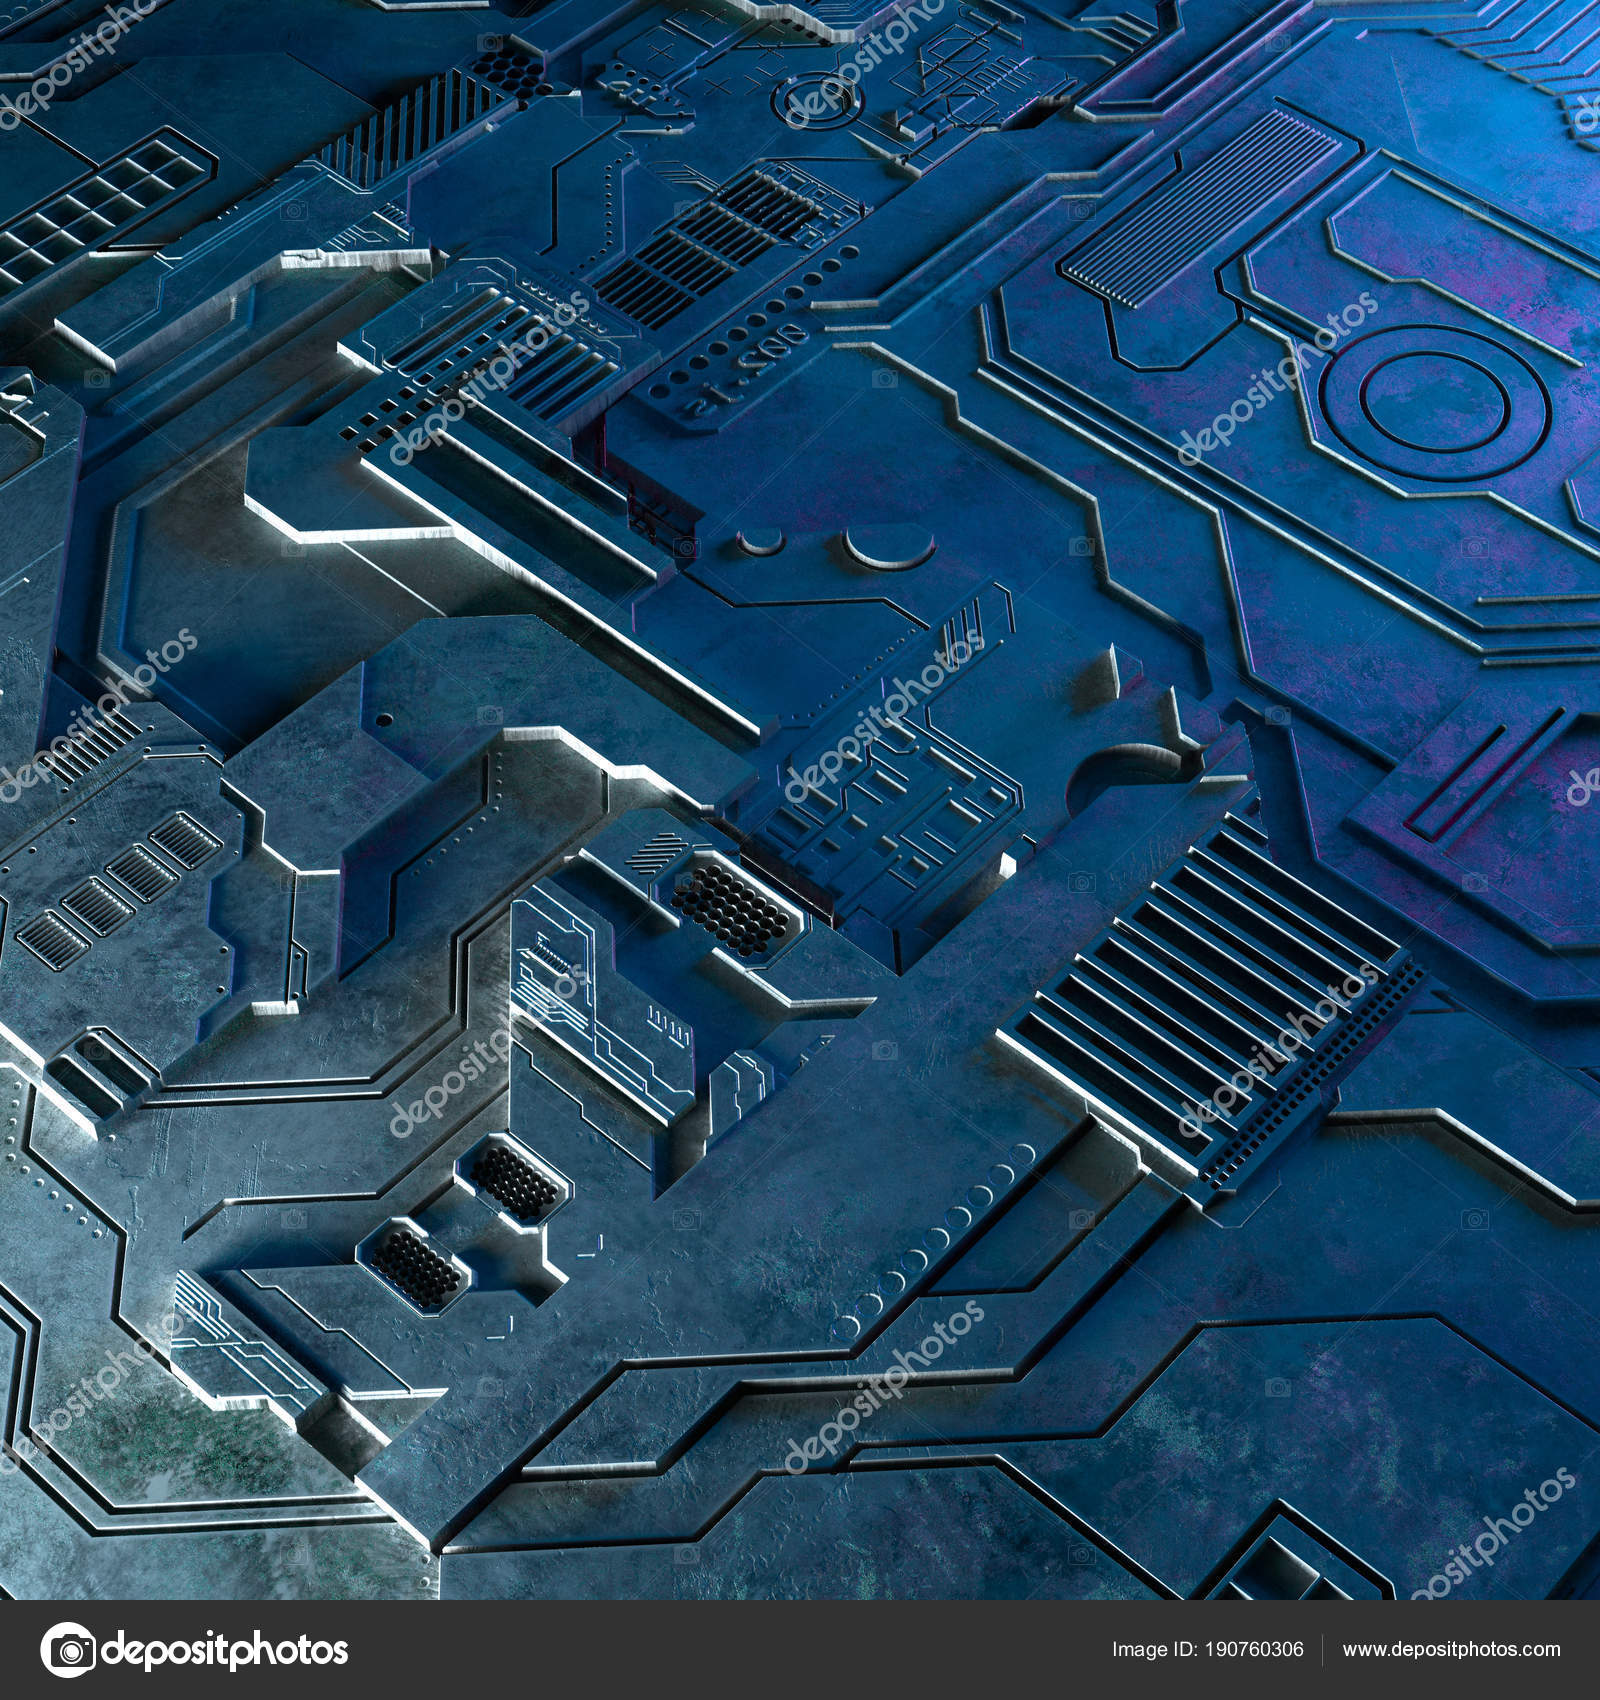 Abstract Technological Background Made Of Different Element Printed Designing A Circuit Board And Getting It Flares 3d Rendering Photo By Irochka